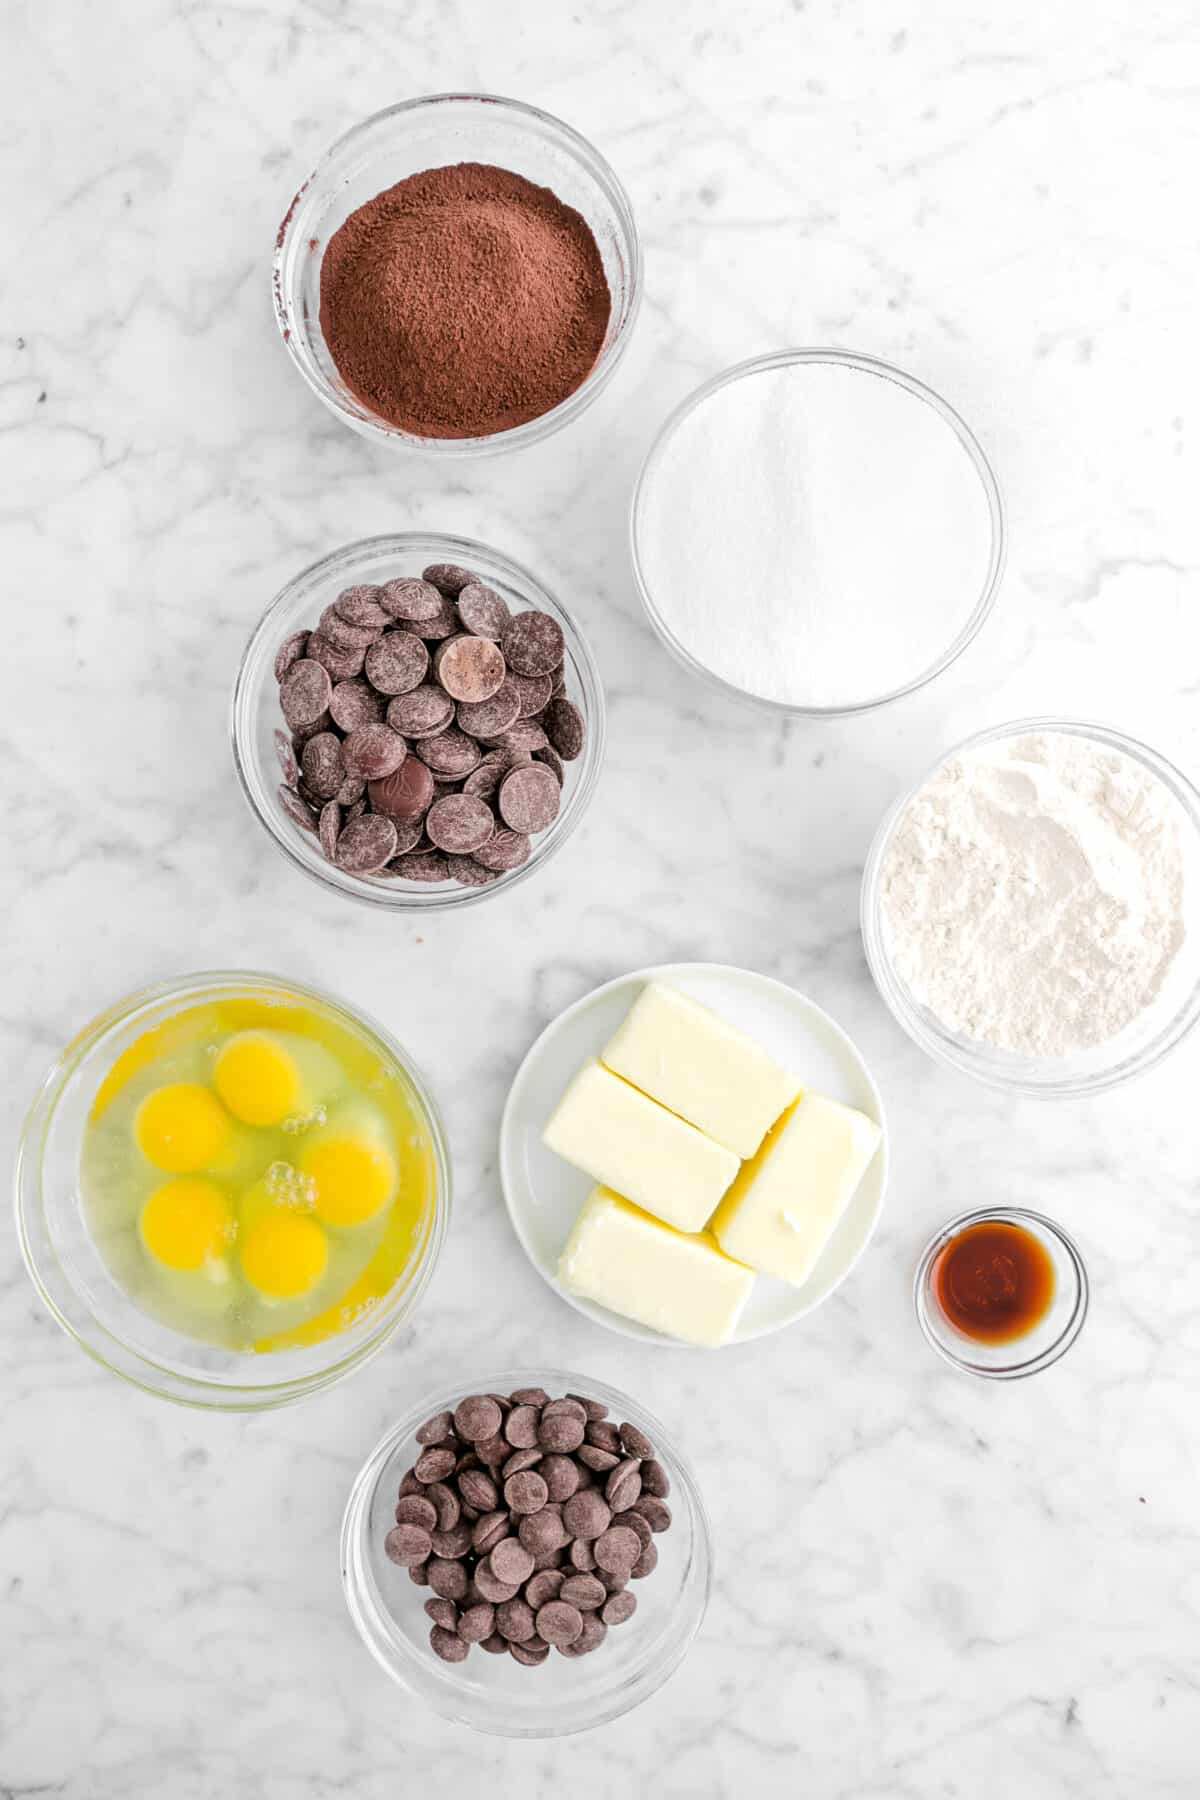 cocoa powder, sugar, chocolate chips, flour, butter, eggs, and vanilla on marble counter